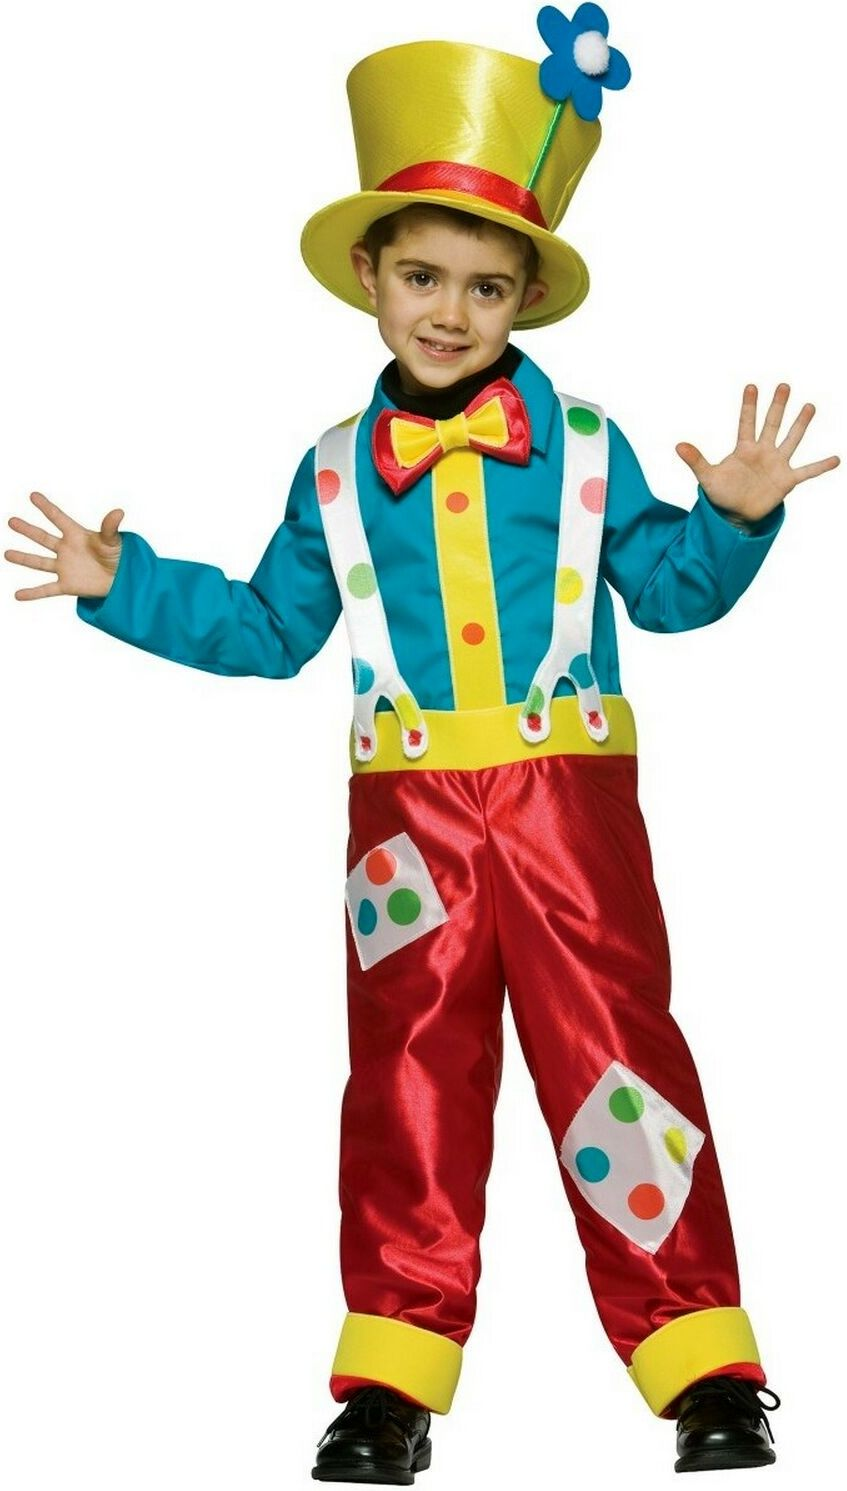 Clown Boy Kids Costume  sc 1 st  Pinterest & Clown Boys Costume | Pinterest | Costumes Ideas para fiestas and ...